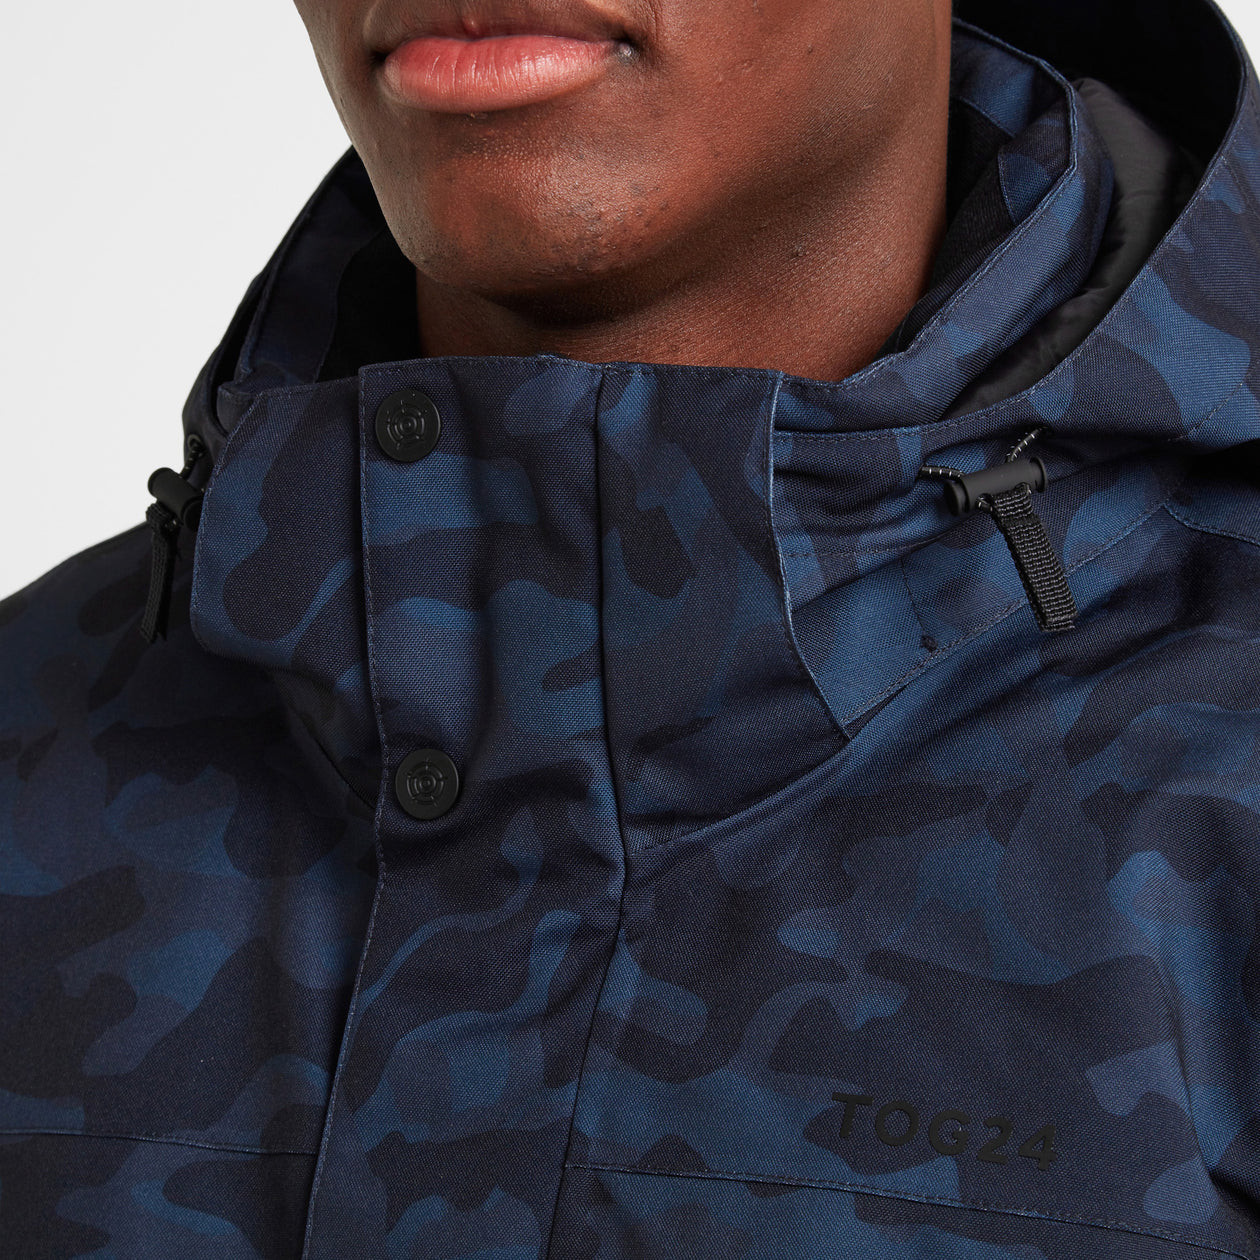 Altitude Mens Ski Jacket - Navy Camo image 4